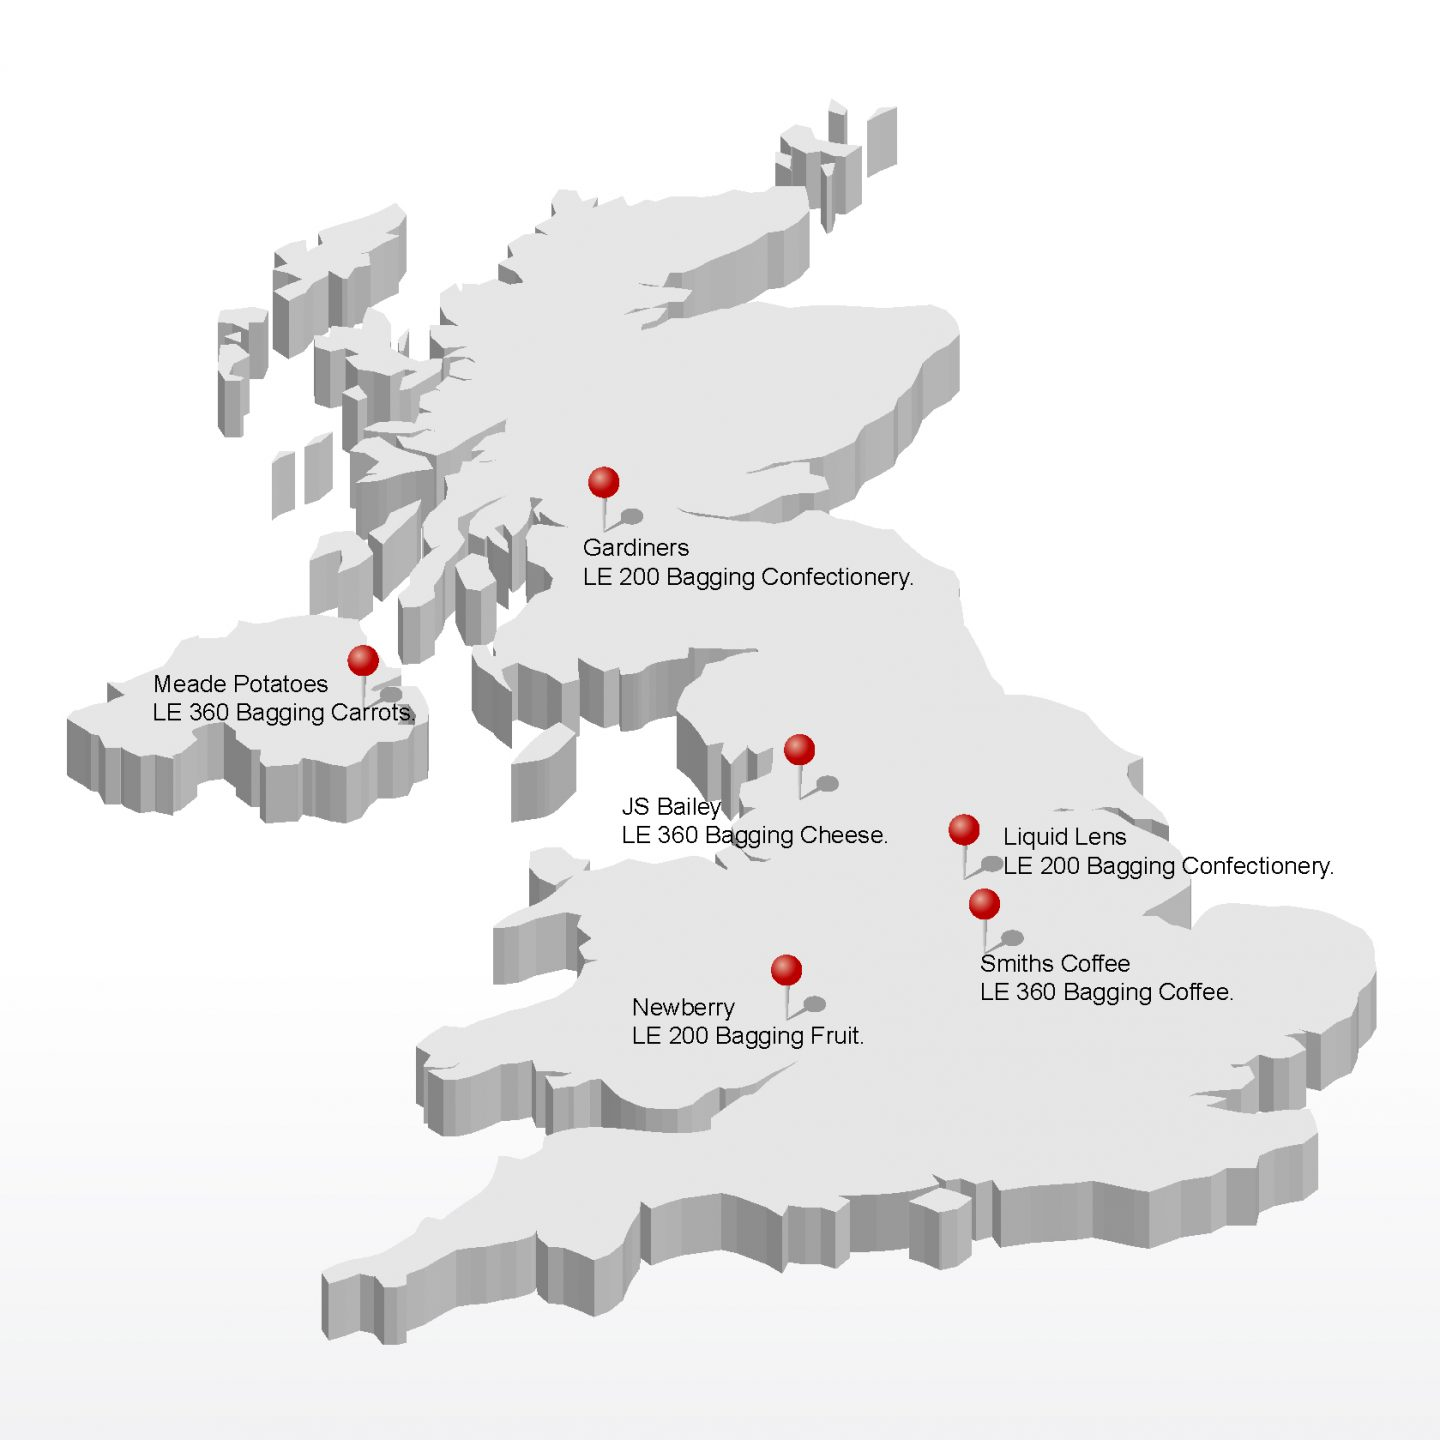 Map of UK VFFS machine installs August 2016